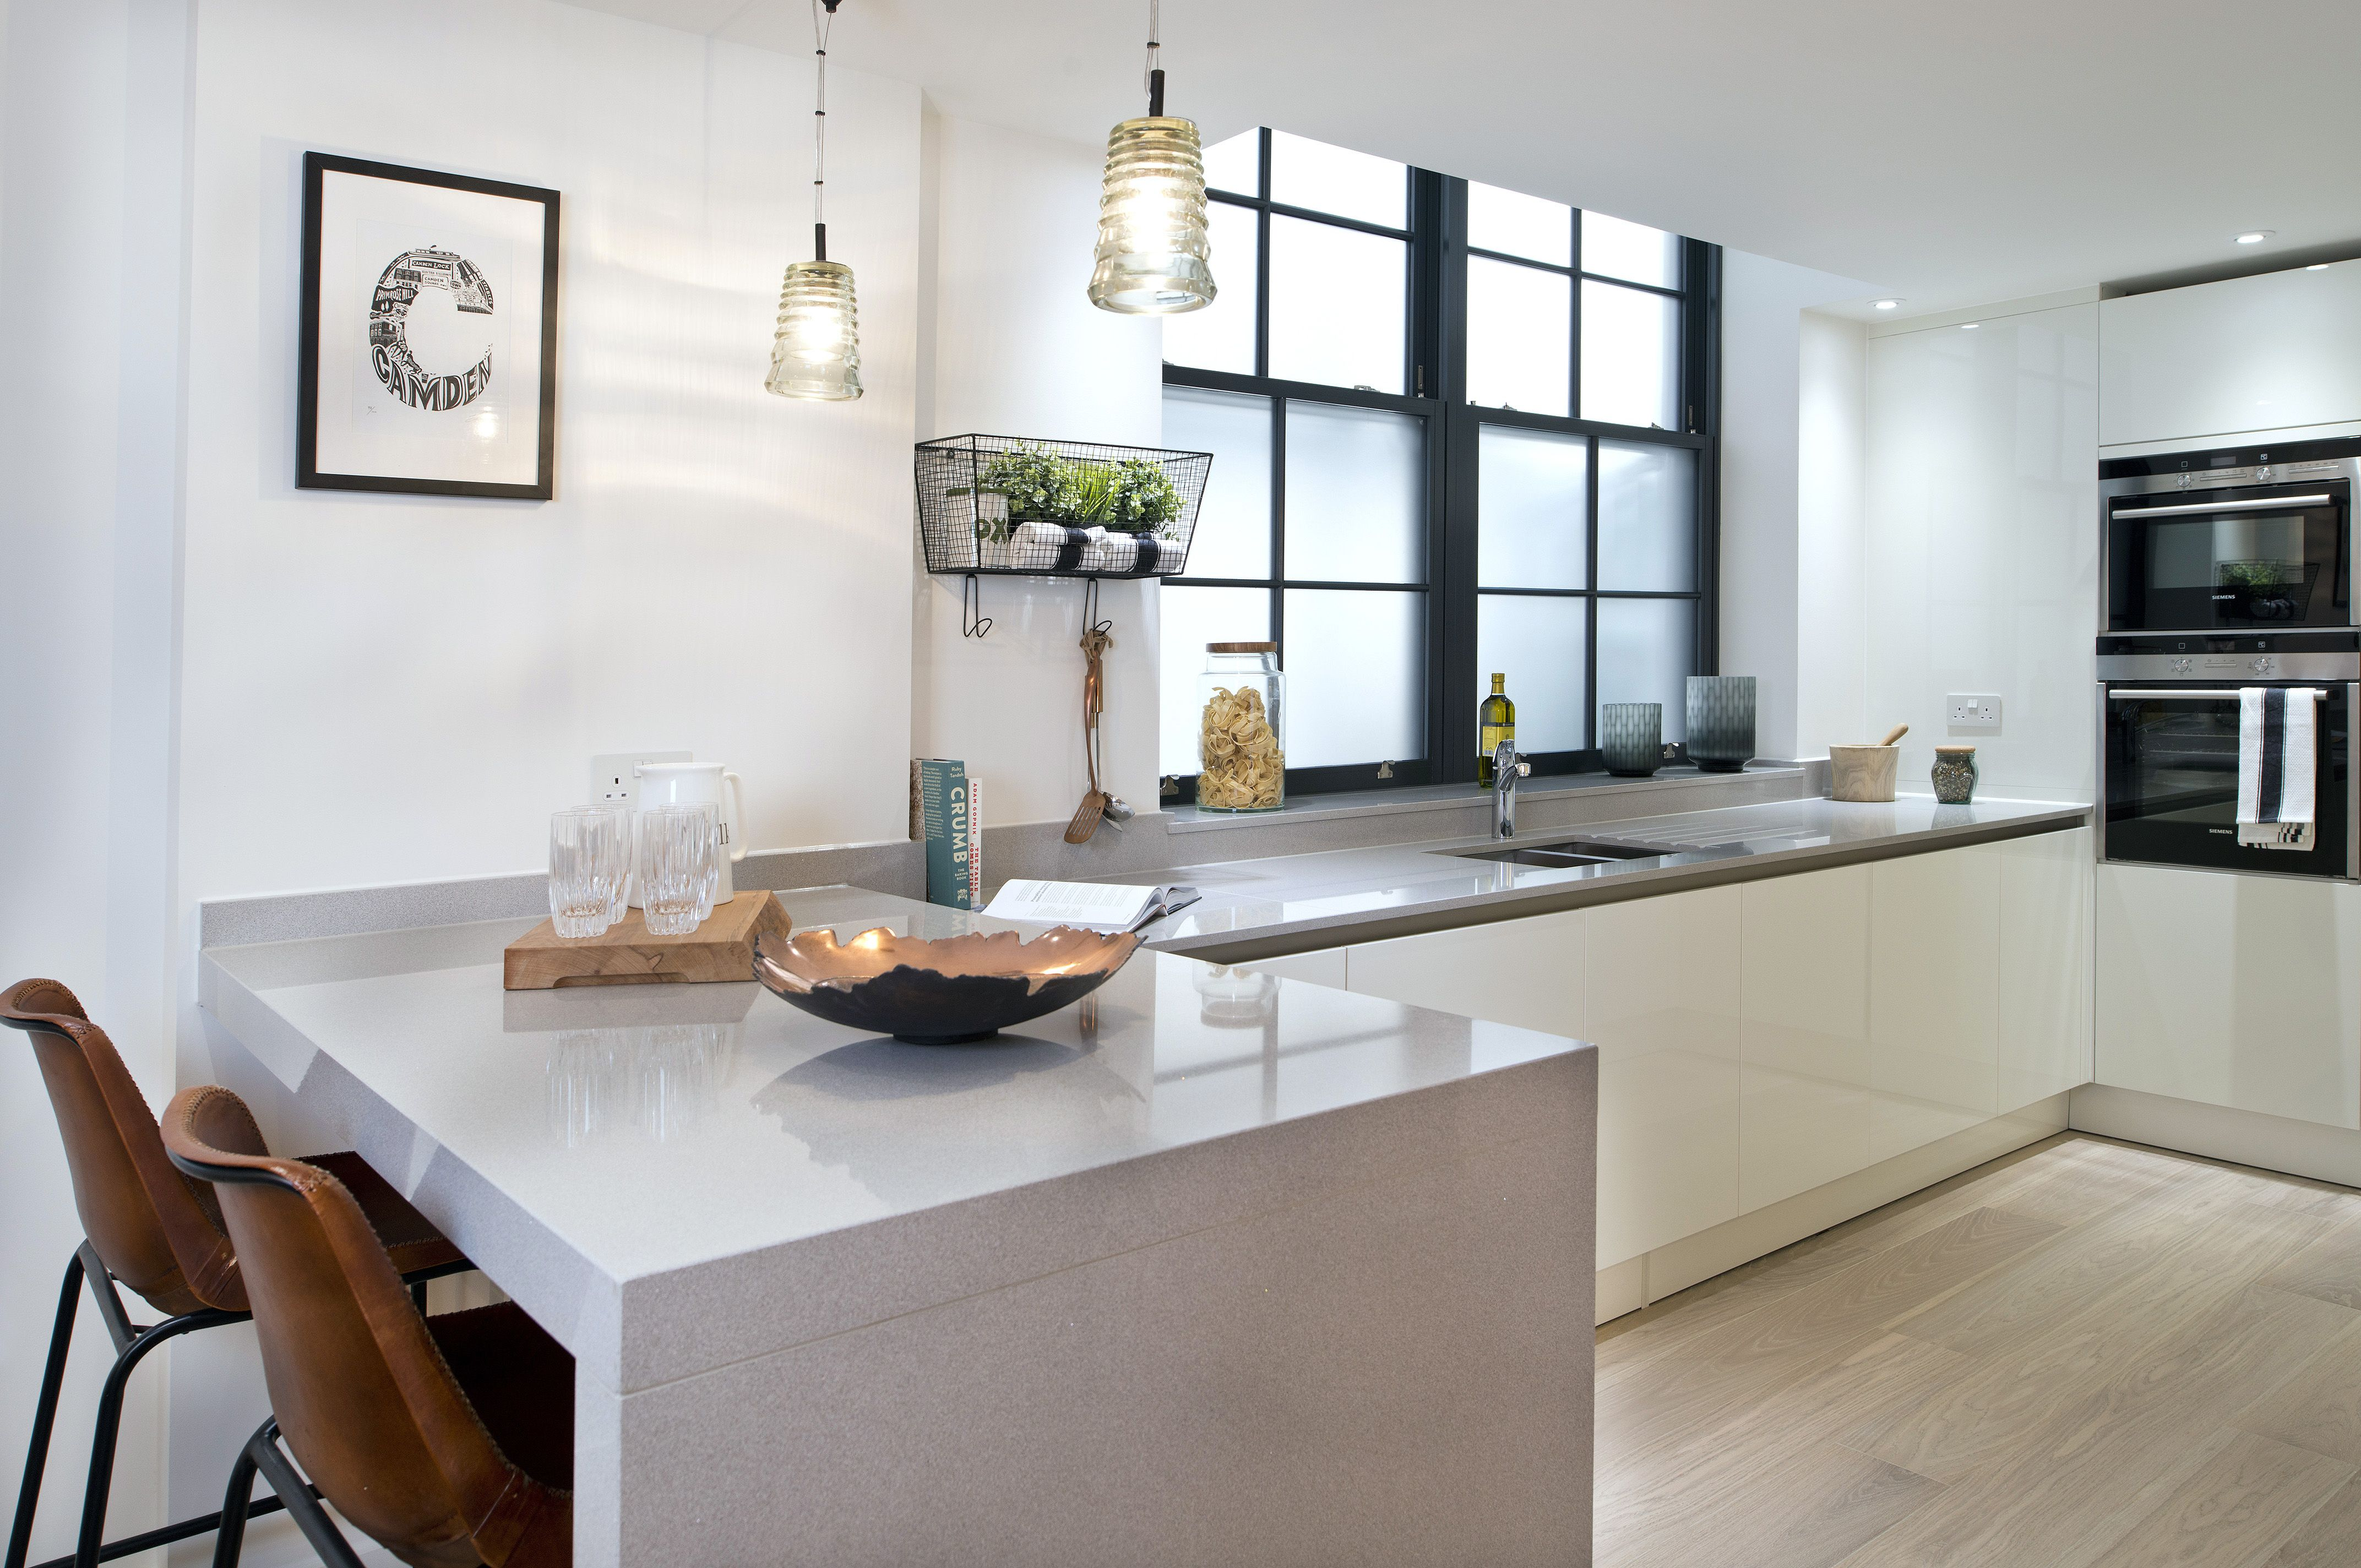 Awesome Landlord Kitchen Pack Image - Kitchen Cabinets | Ideas ...